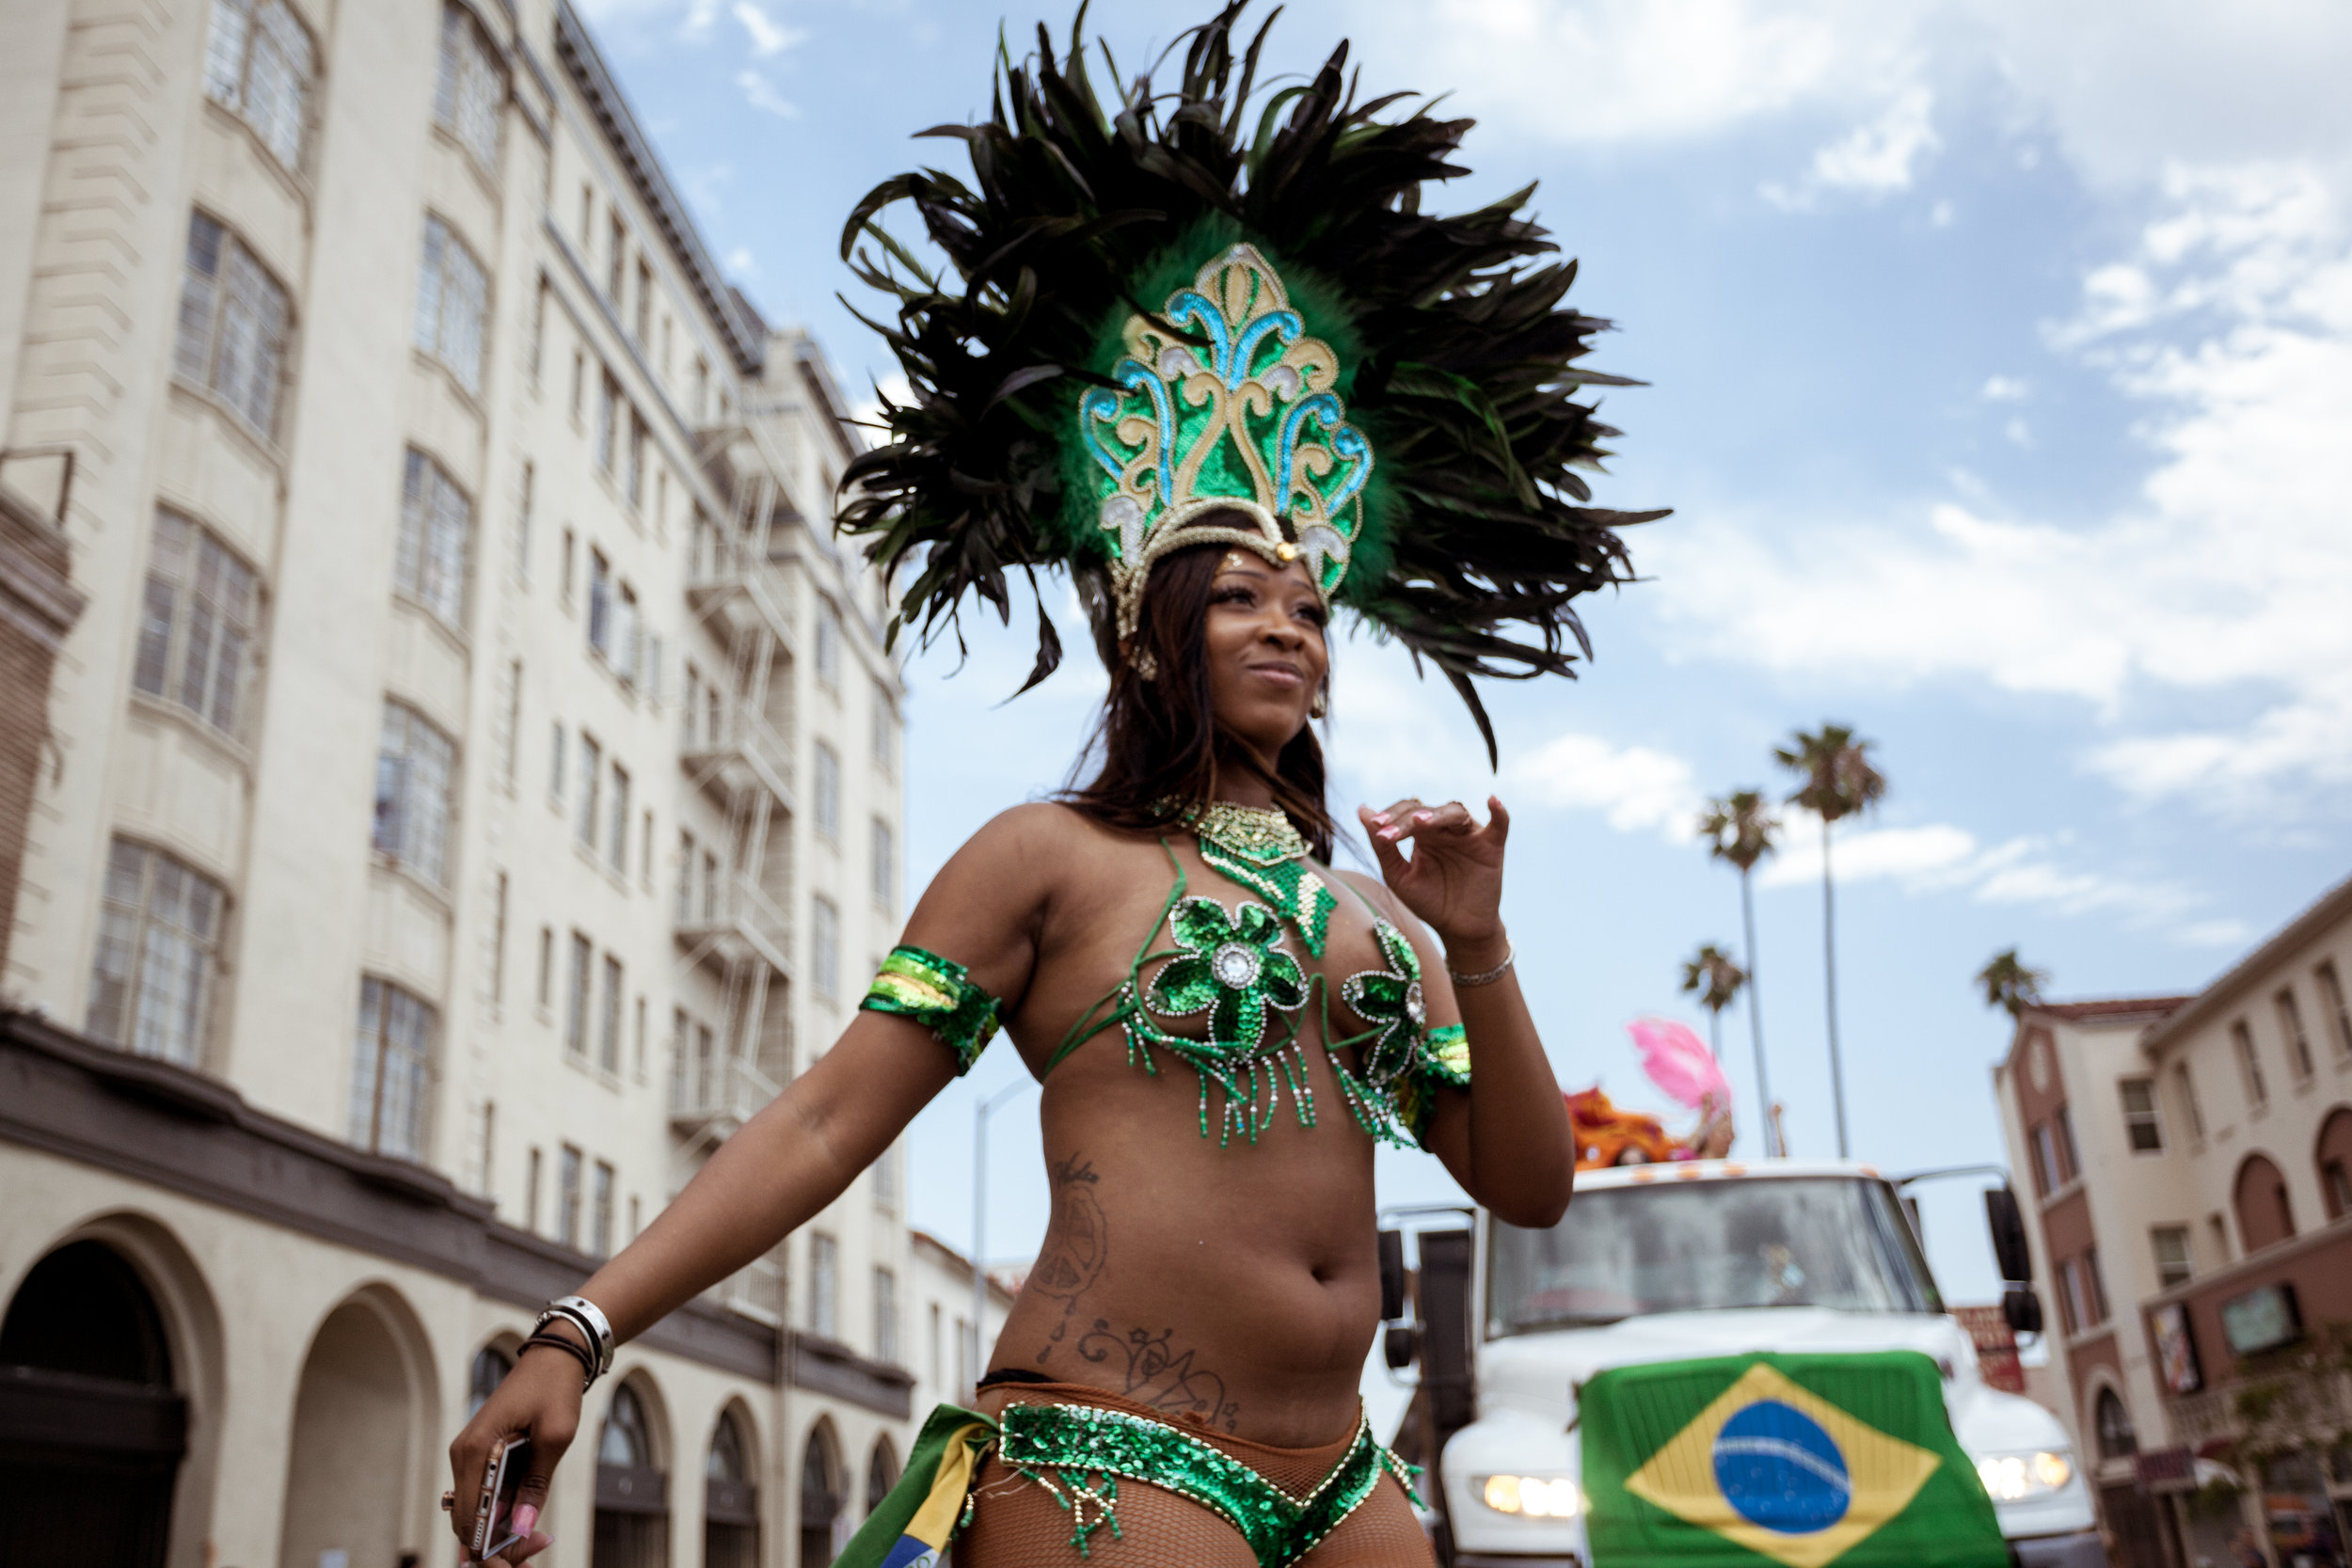 Chacon Images_Carnaval_Print-5777.jpg